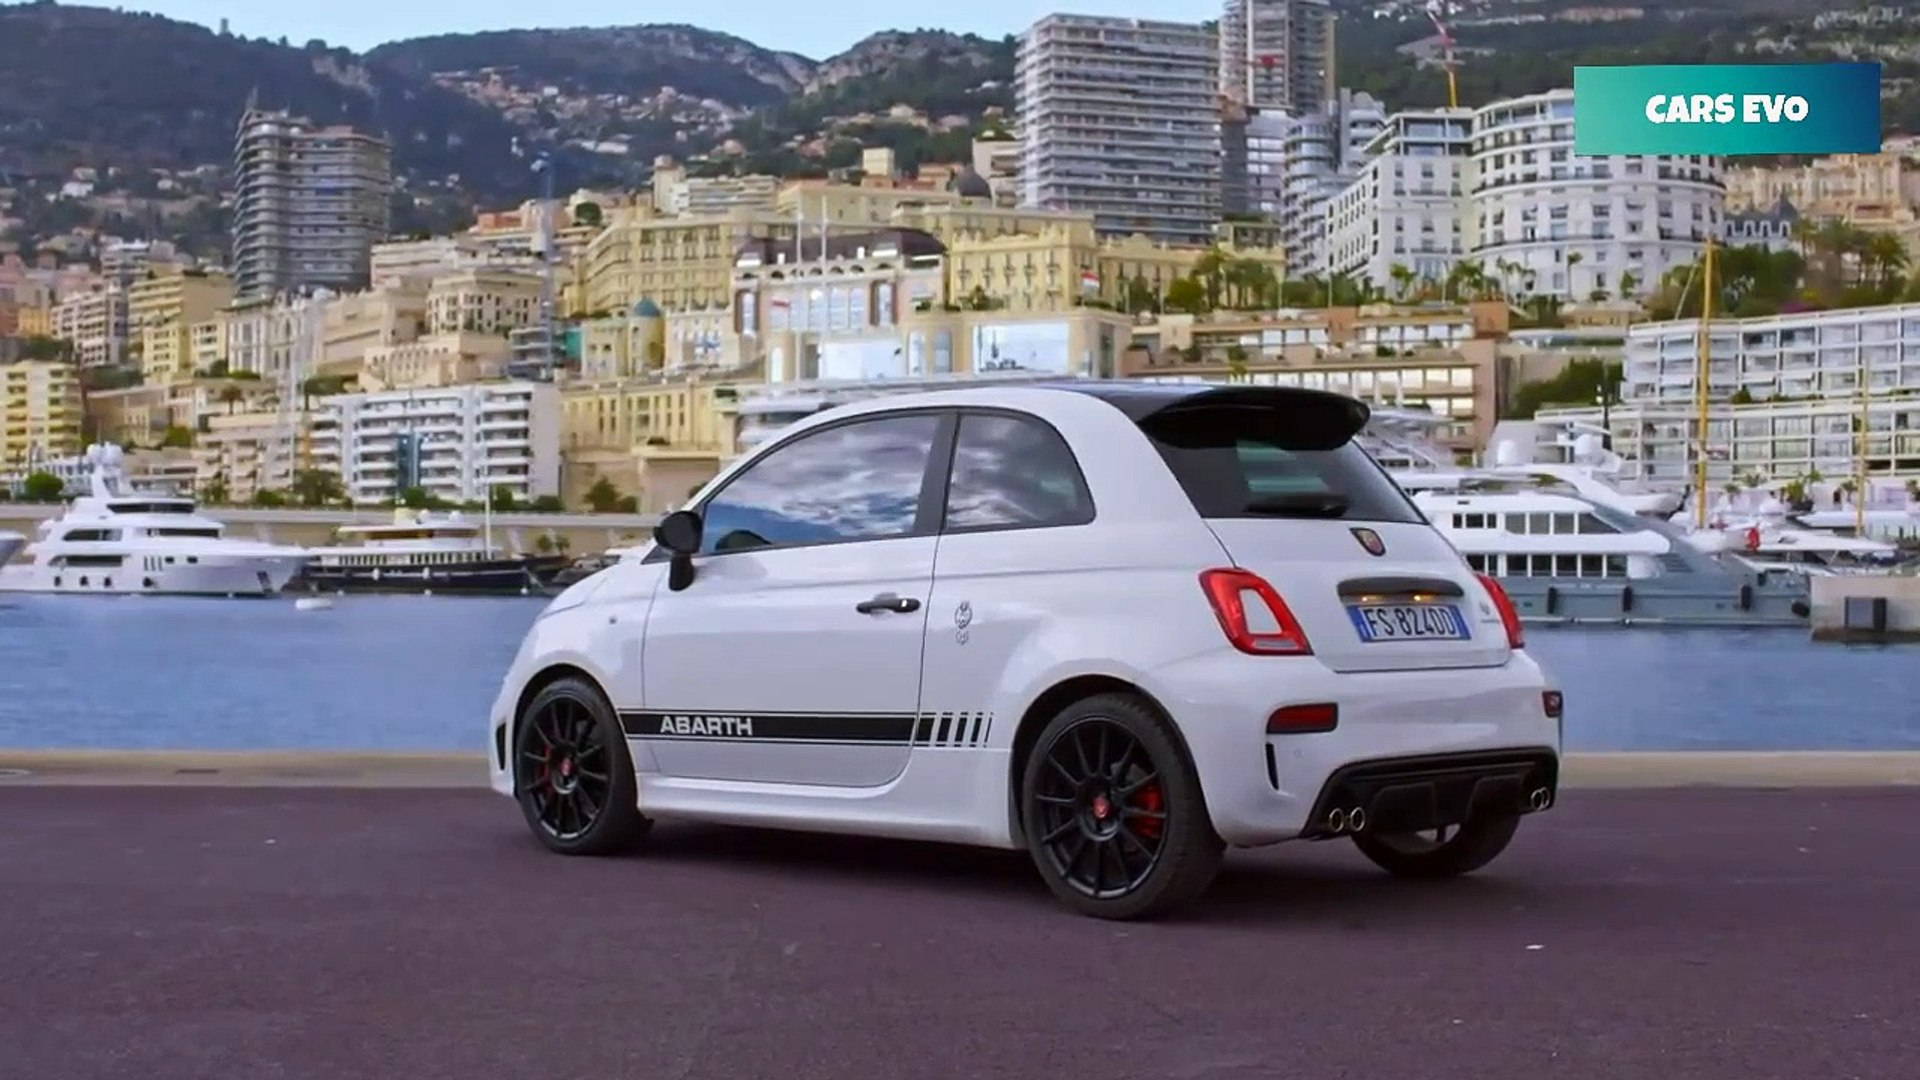 2019 Abarth 595 Competizione - Performance And Style